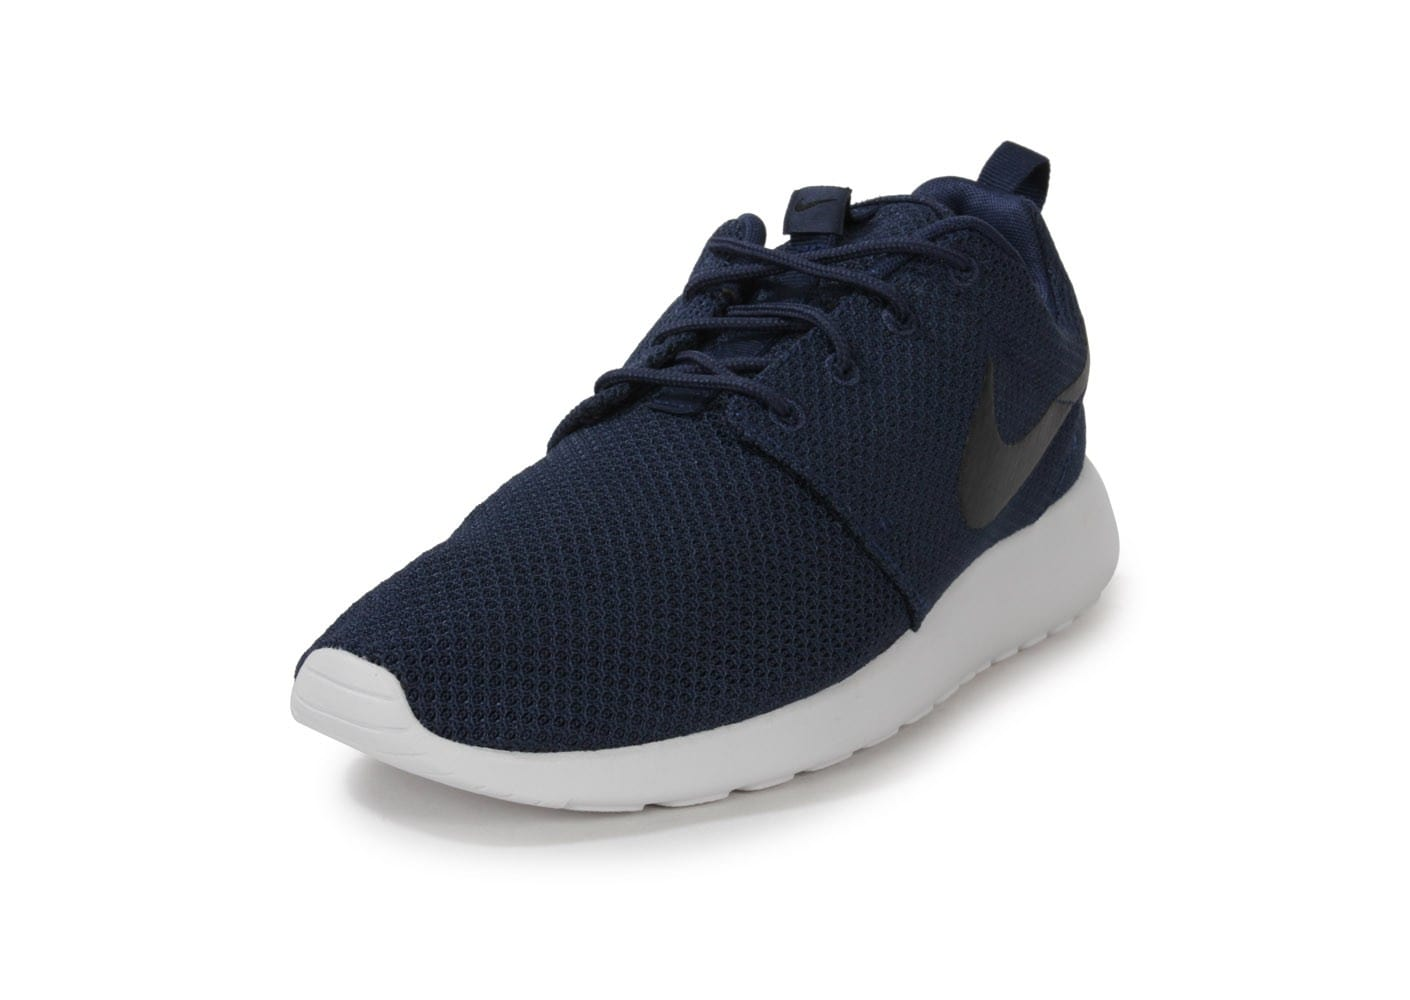 purchase cheap 36761 2868c ... Chaussures Nike Roshe Run Bleu Marine vue avant ...